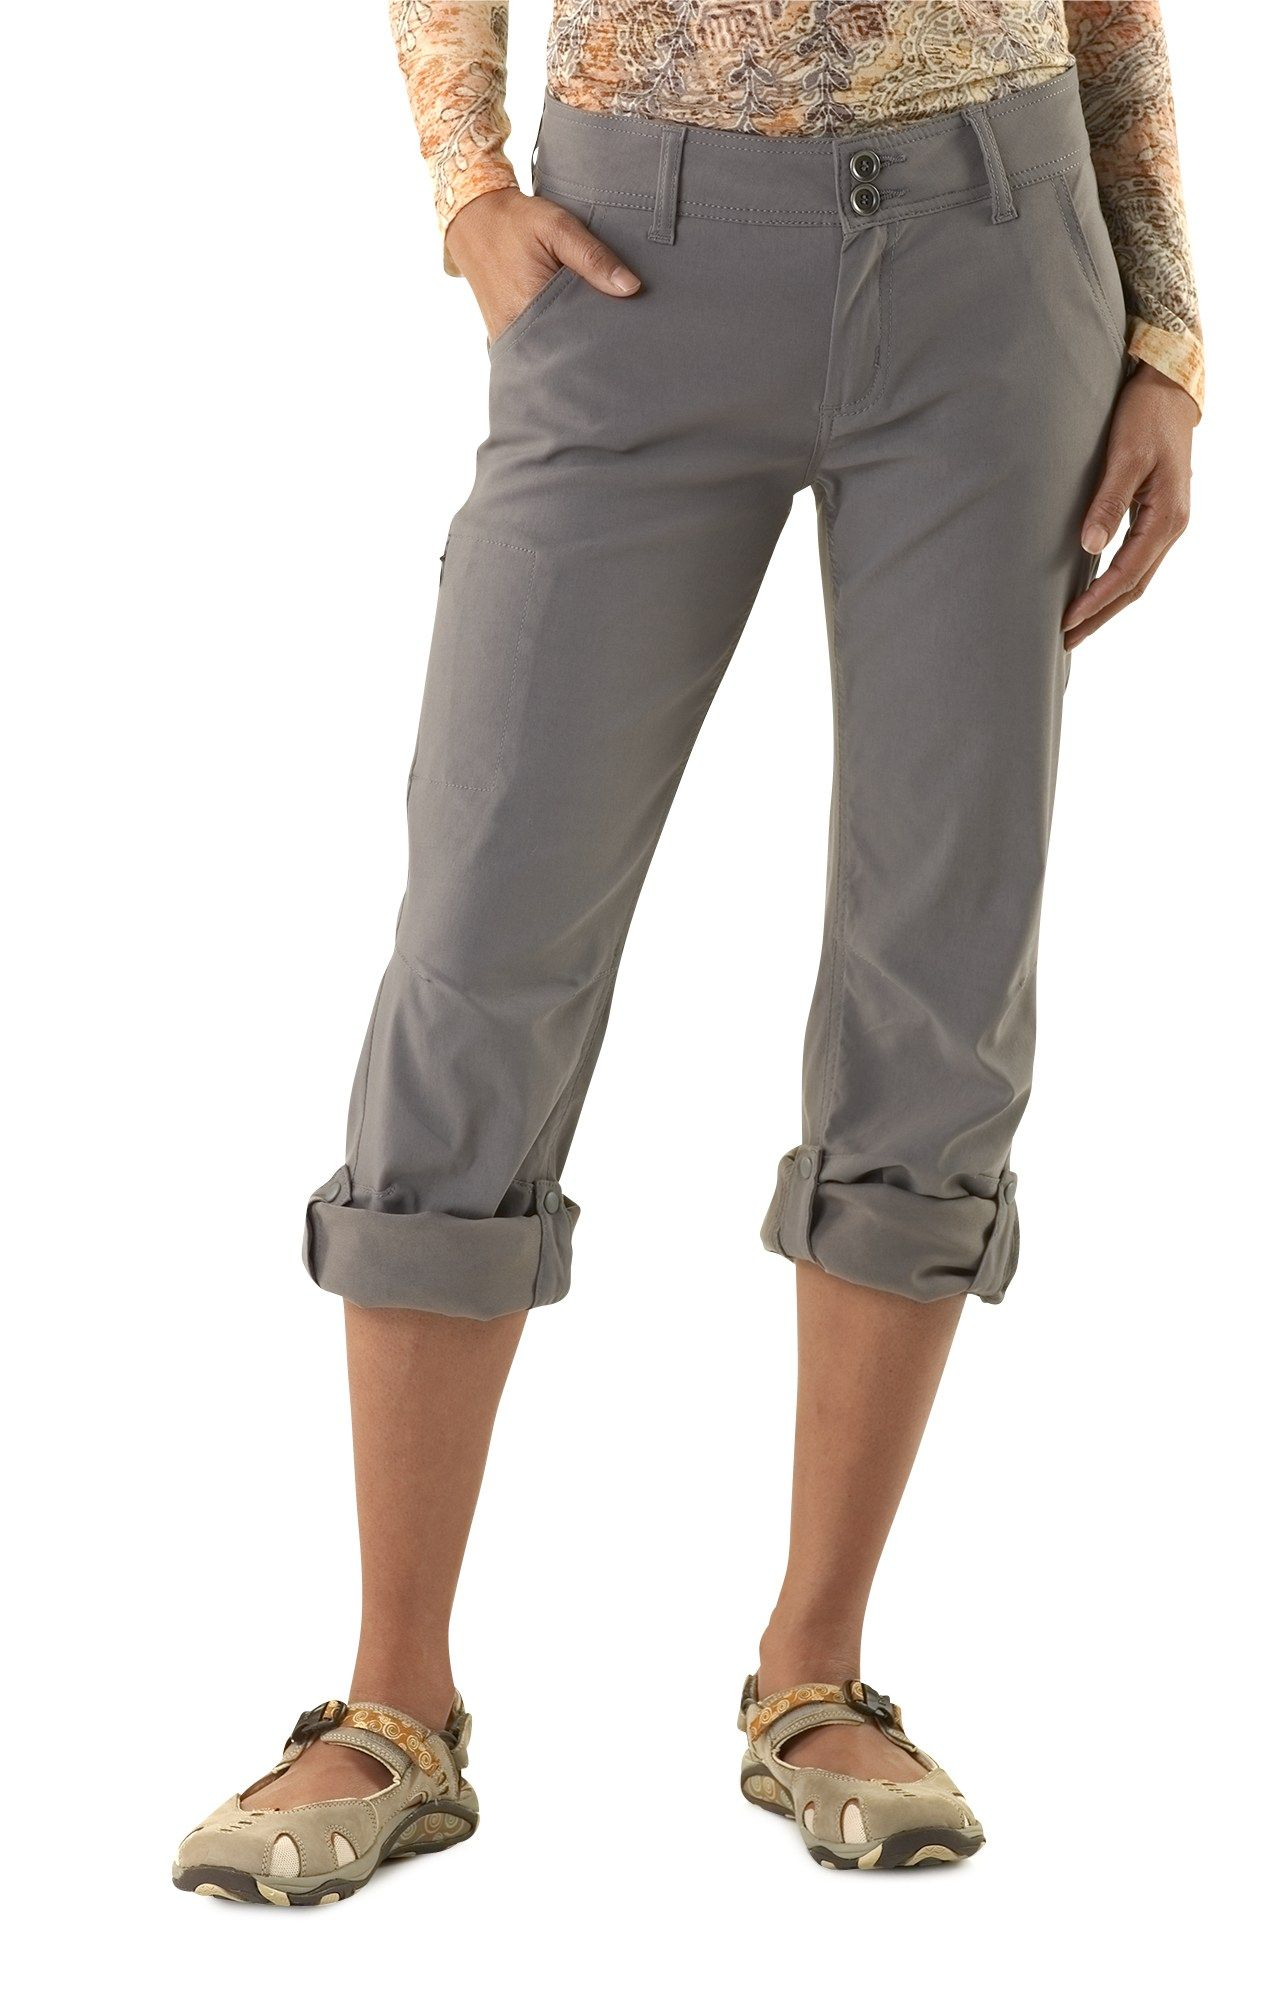 71dba40512b032 Hiking pants similar to this that roll up into capris - quick drying -  prAna Halle Pants - Women's - Free Shipping at REI.com